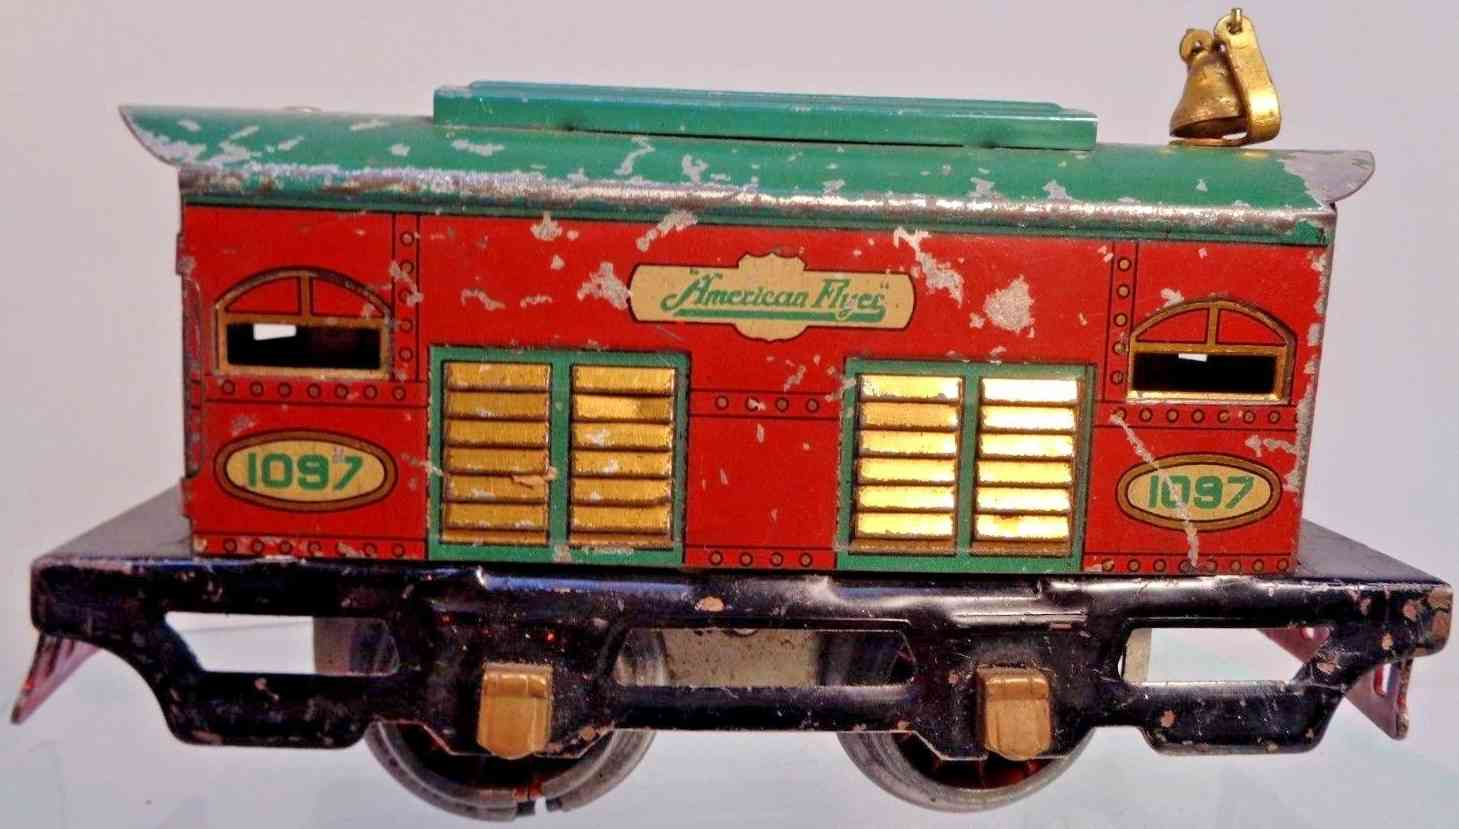 american flyer toy company 1097 railway toy engine electric locomotive red green gauge 0